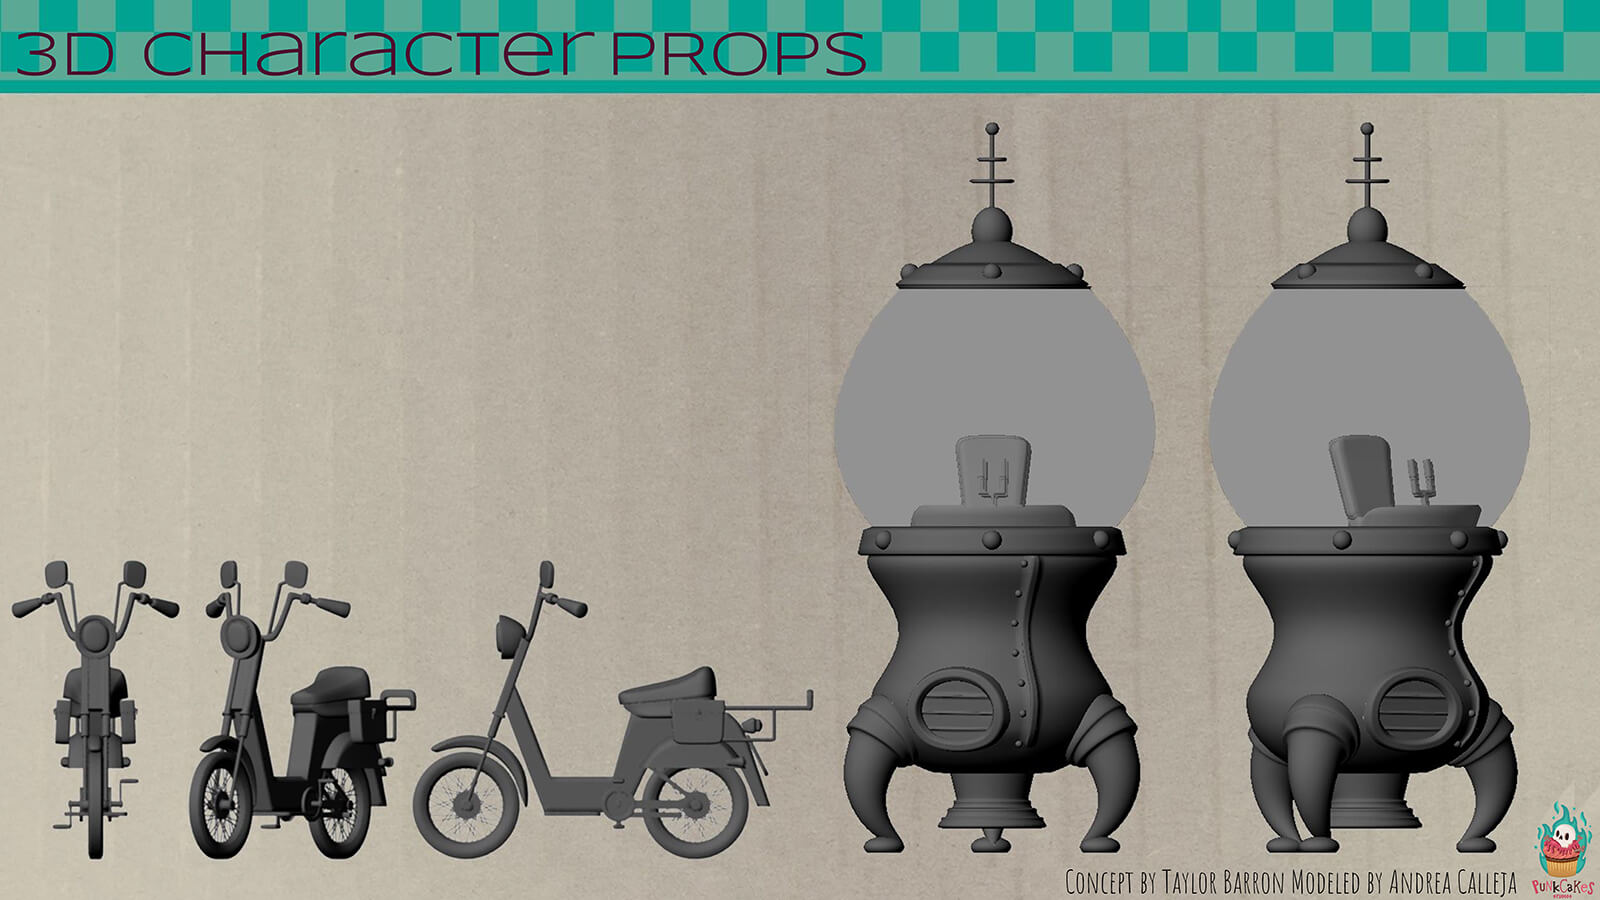 3D renders of character props, including a motor scooter and a rocket ship.